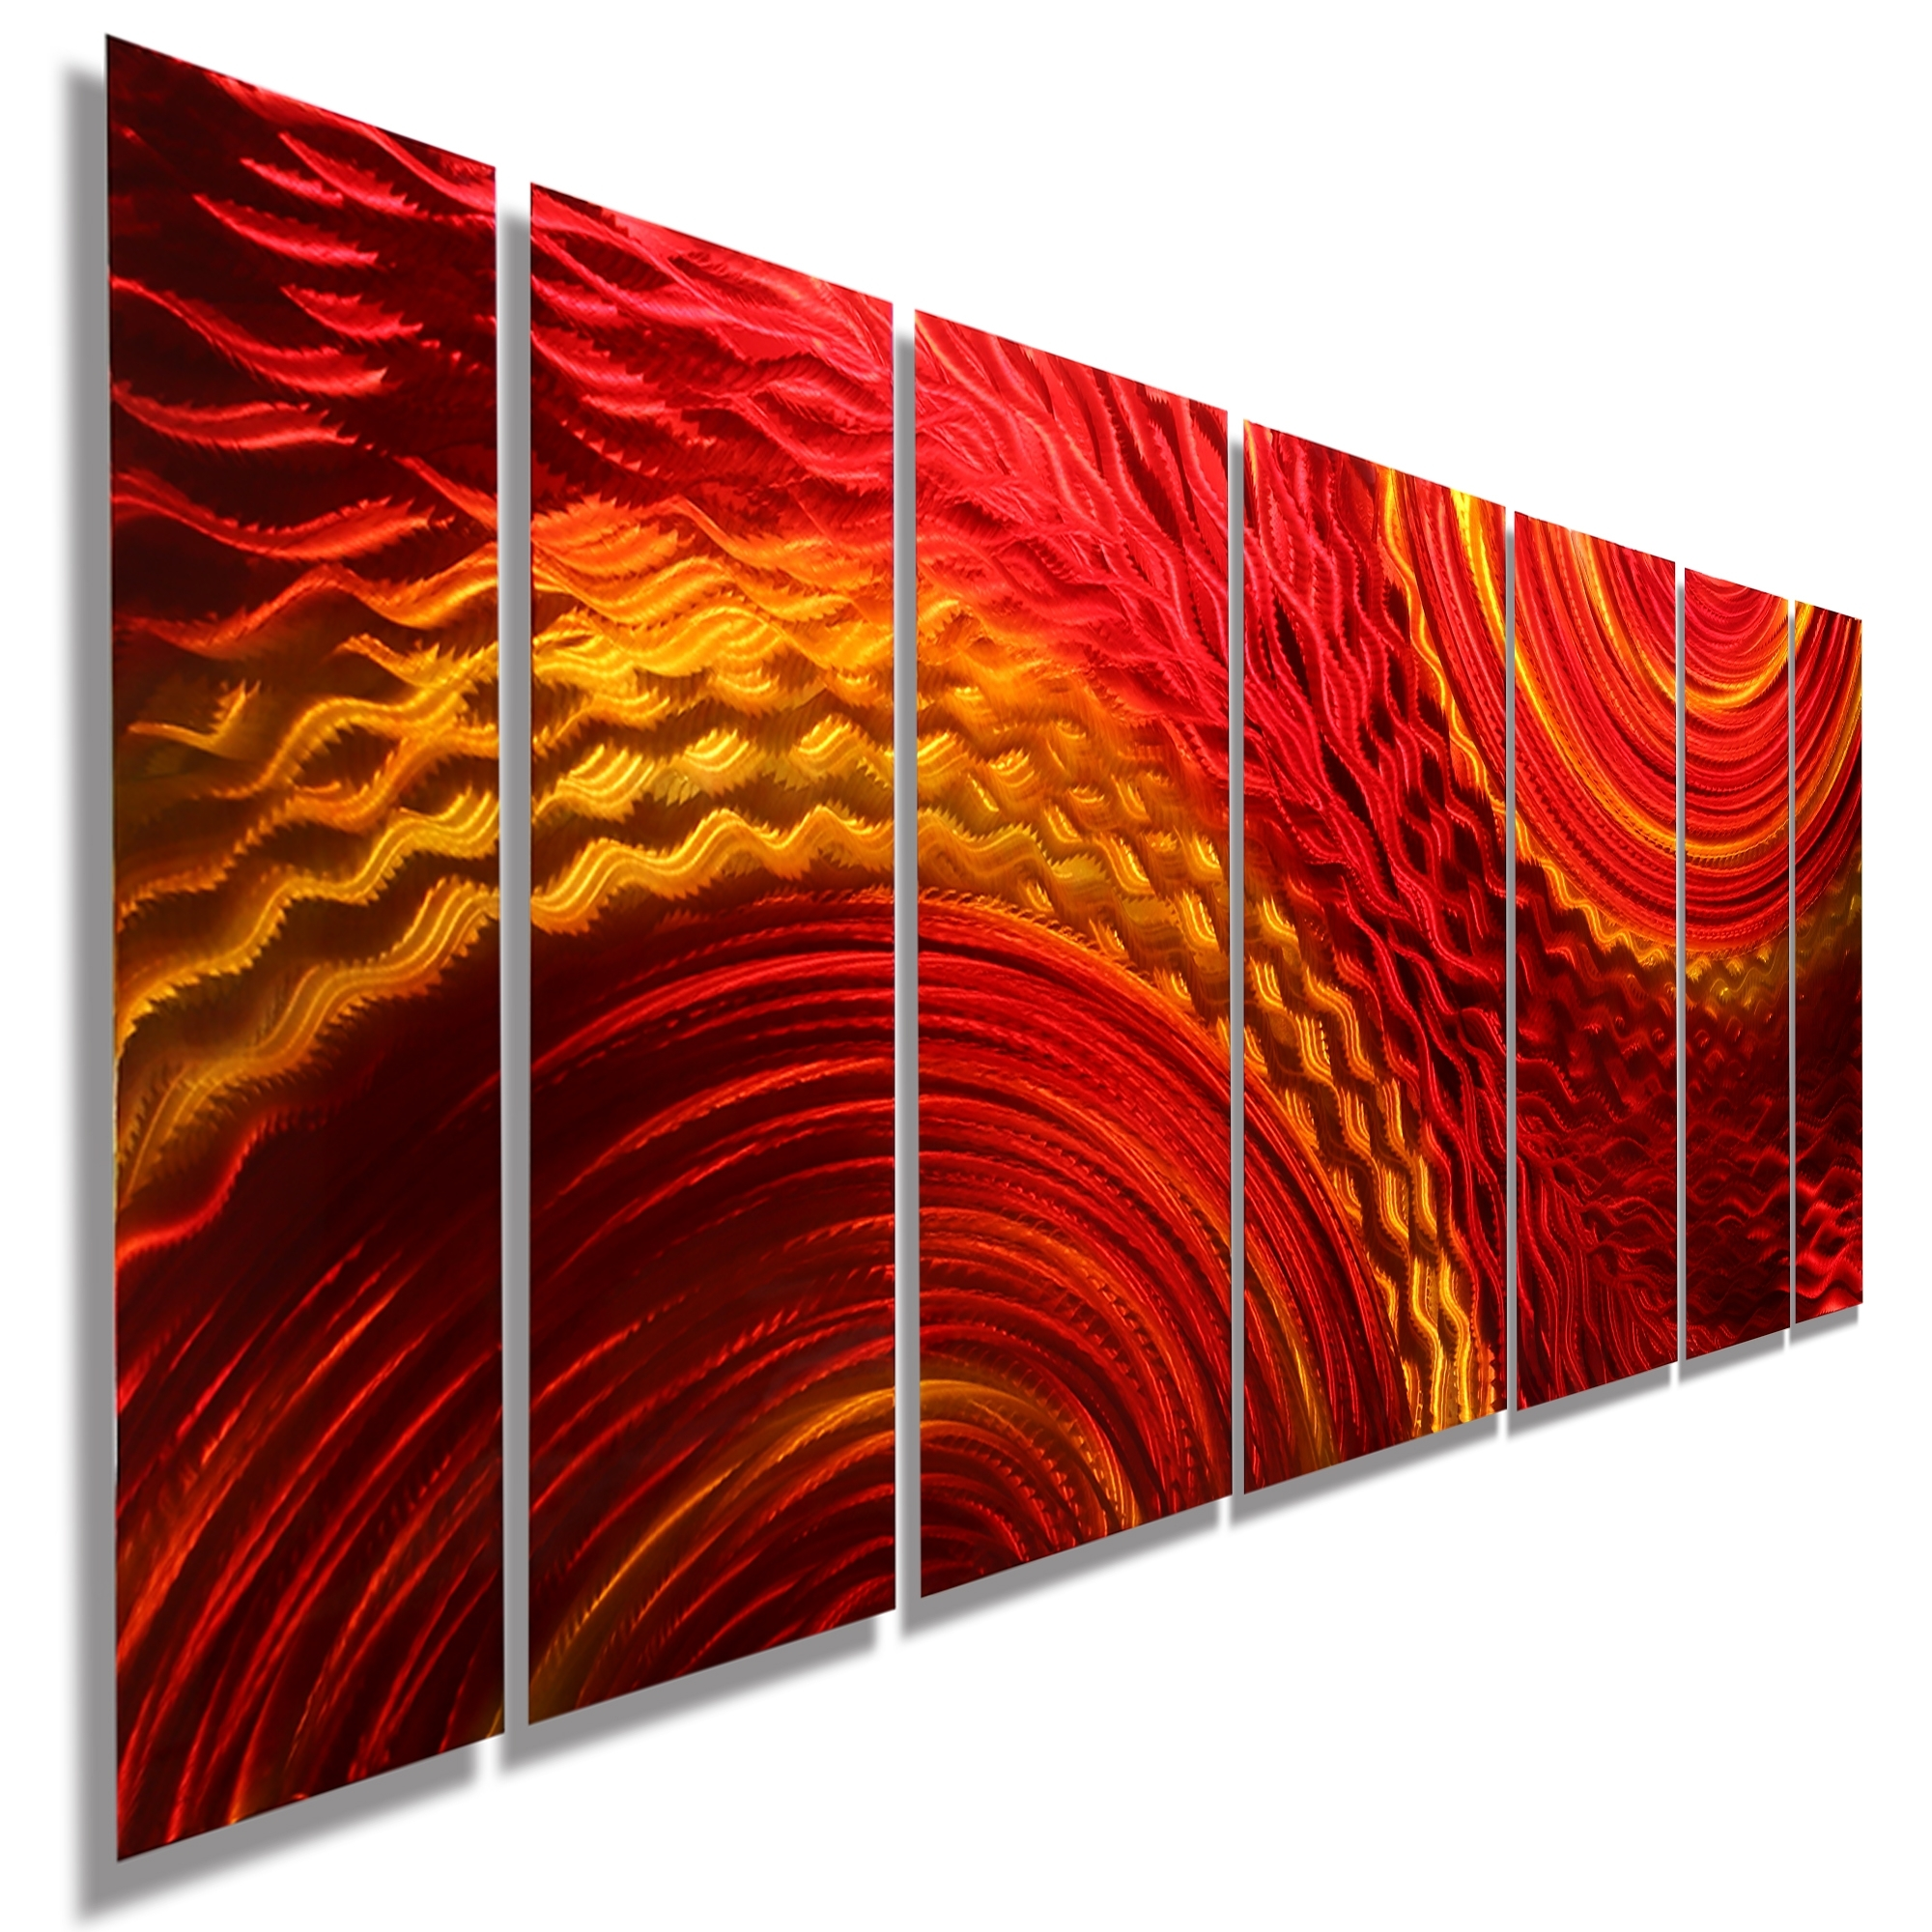 Best And Newest Home Decor: Alluring Abstract Metal Wall Art With Harvest Moods Xl Intended For Abstract Wall Art Australia (View 7 of 15)